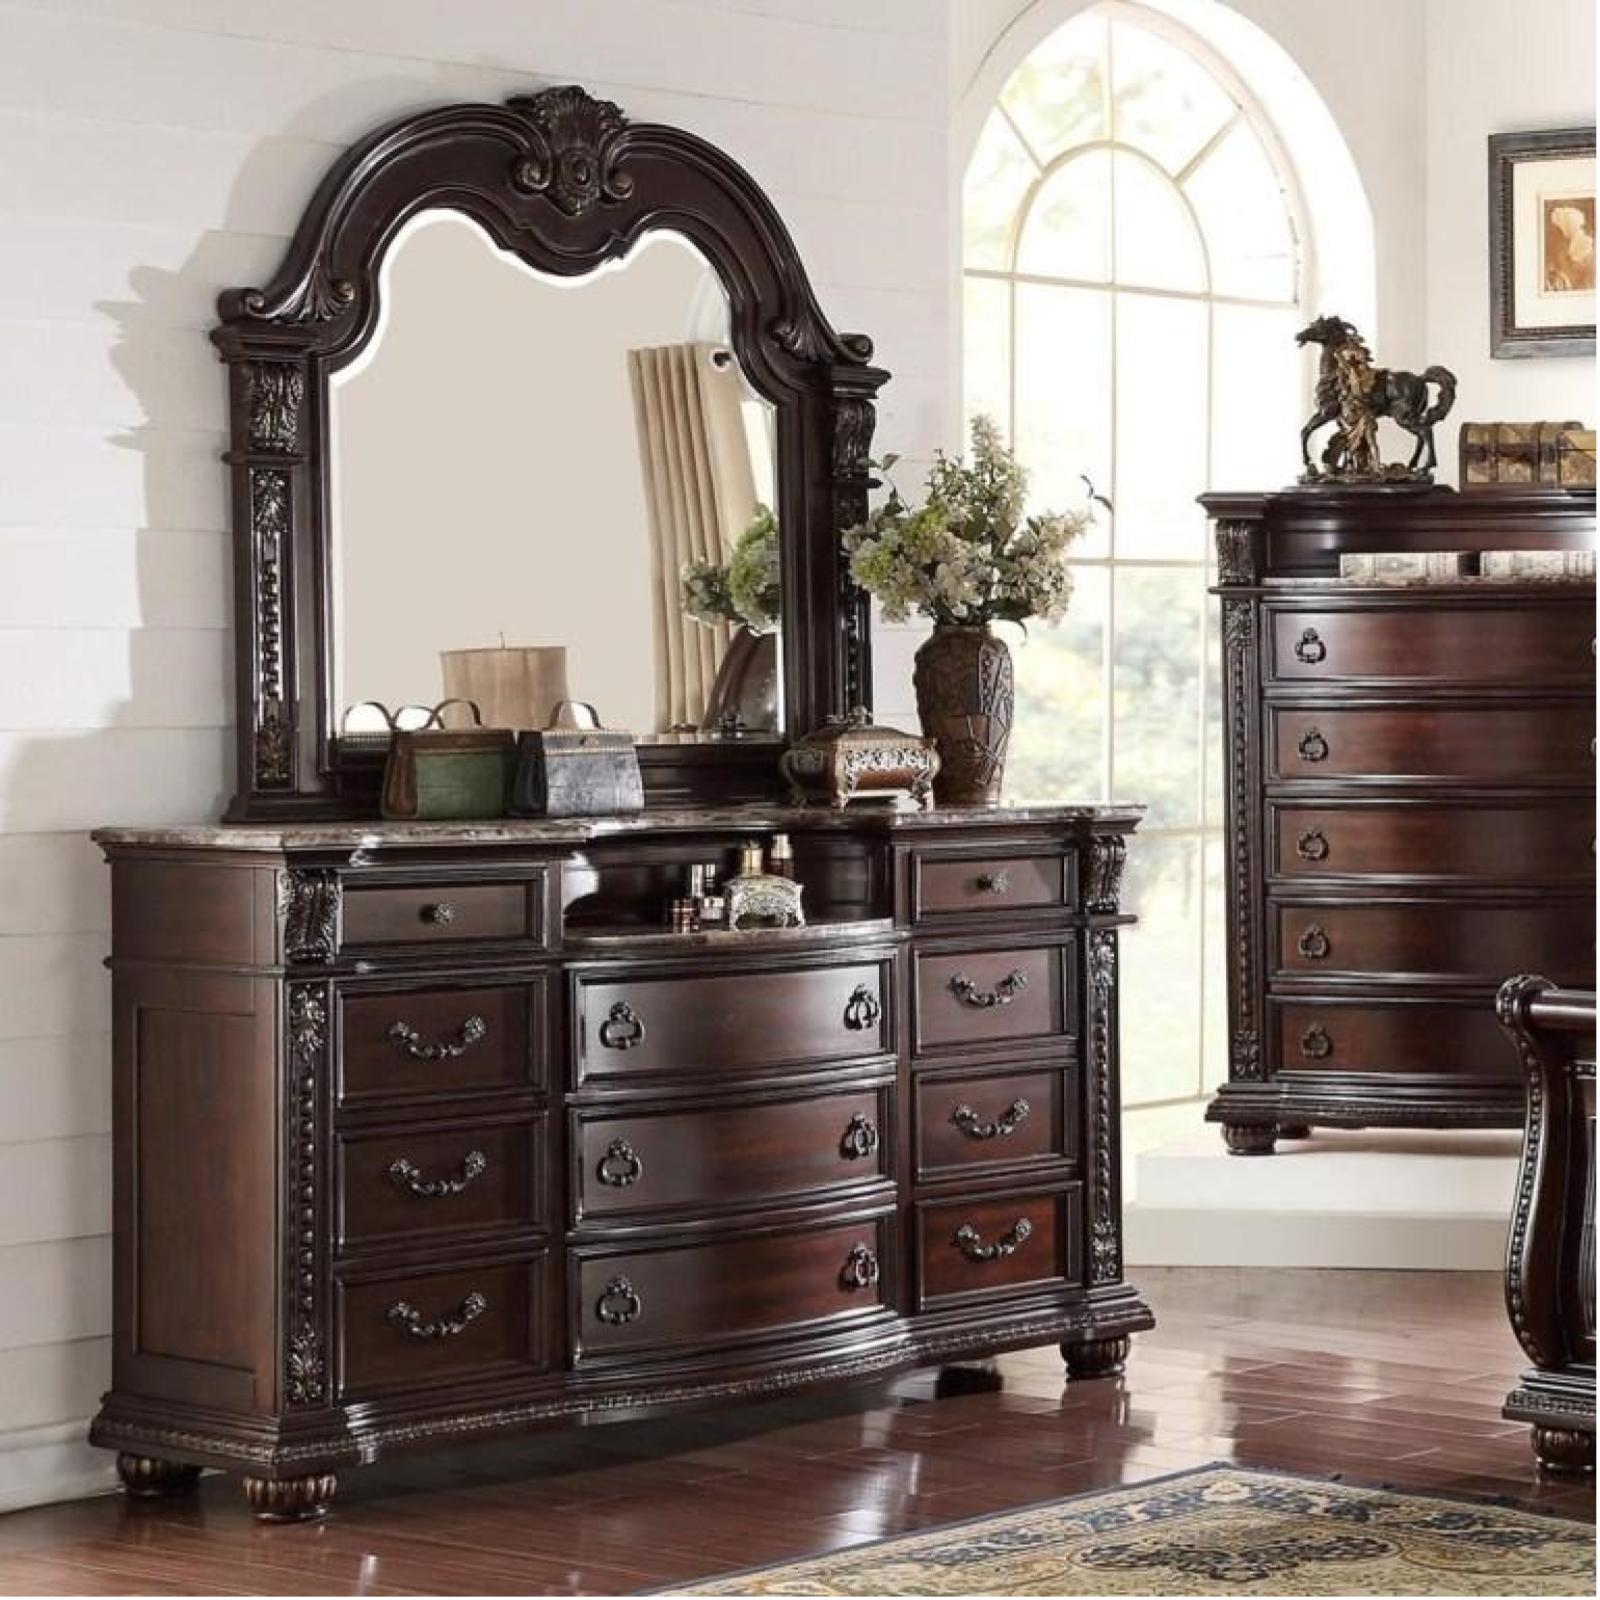 Stanley Dresser Mirror Adams Furniture